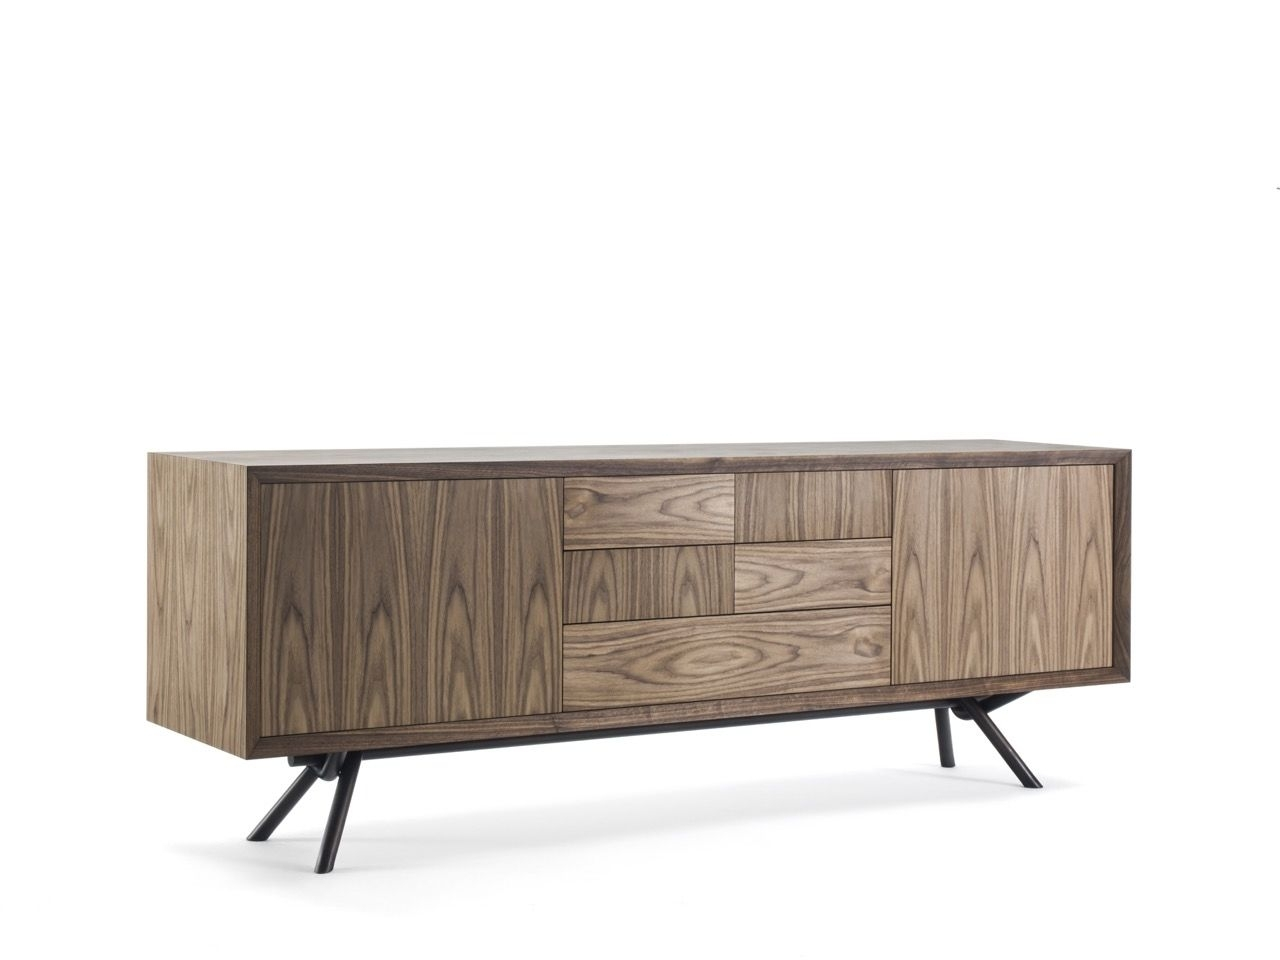 Riva 1920 | Natural Living | Kauri | Briccole inside Iron Sideboards (Image 20 of 30)